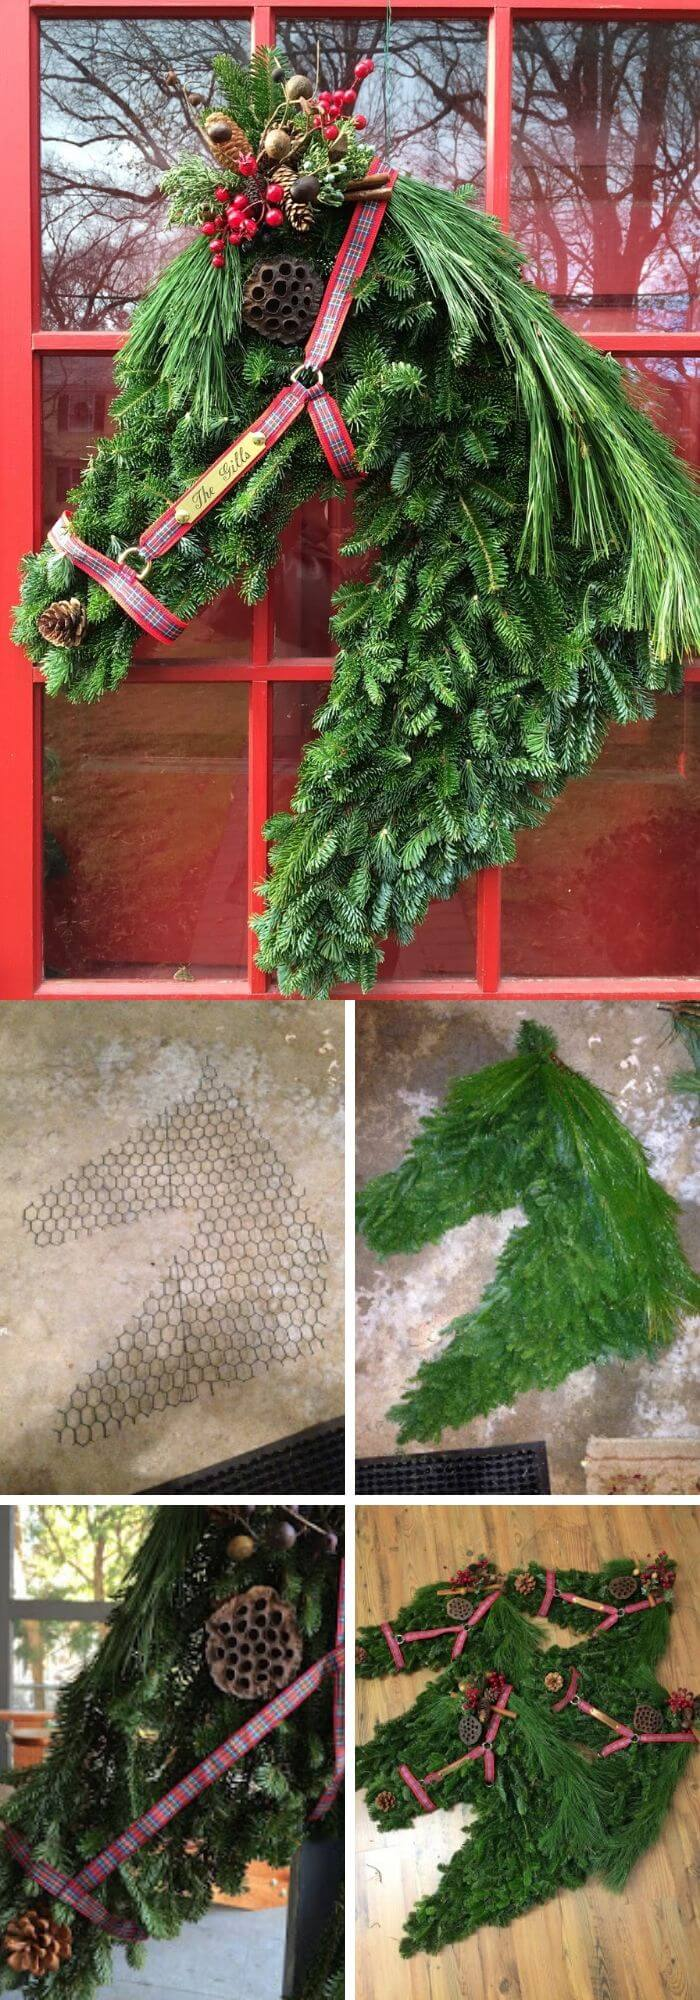 20 Creative Diy Christmas Wreath Ideas Tutorials With Pictures